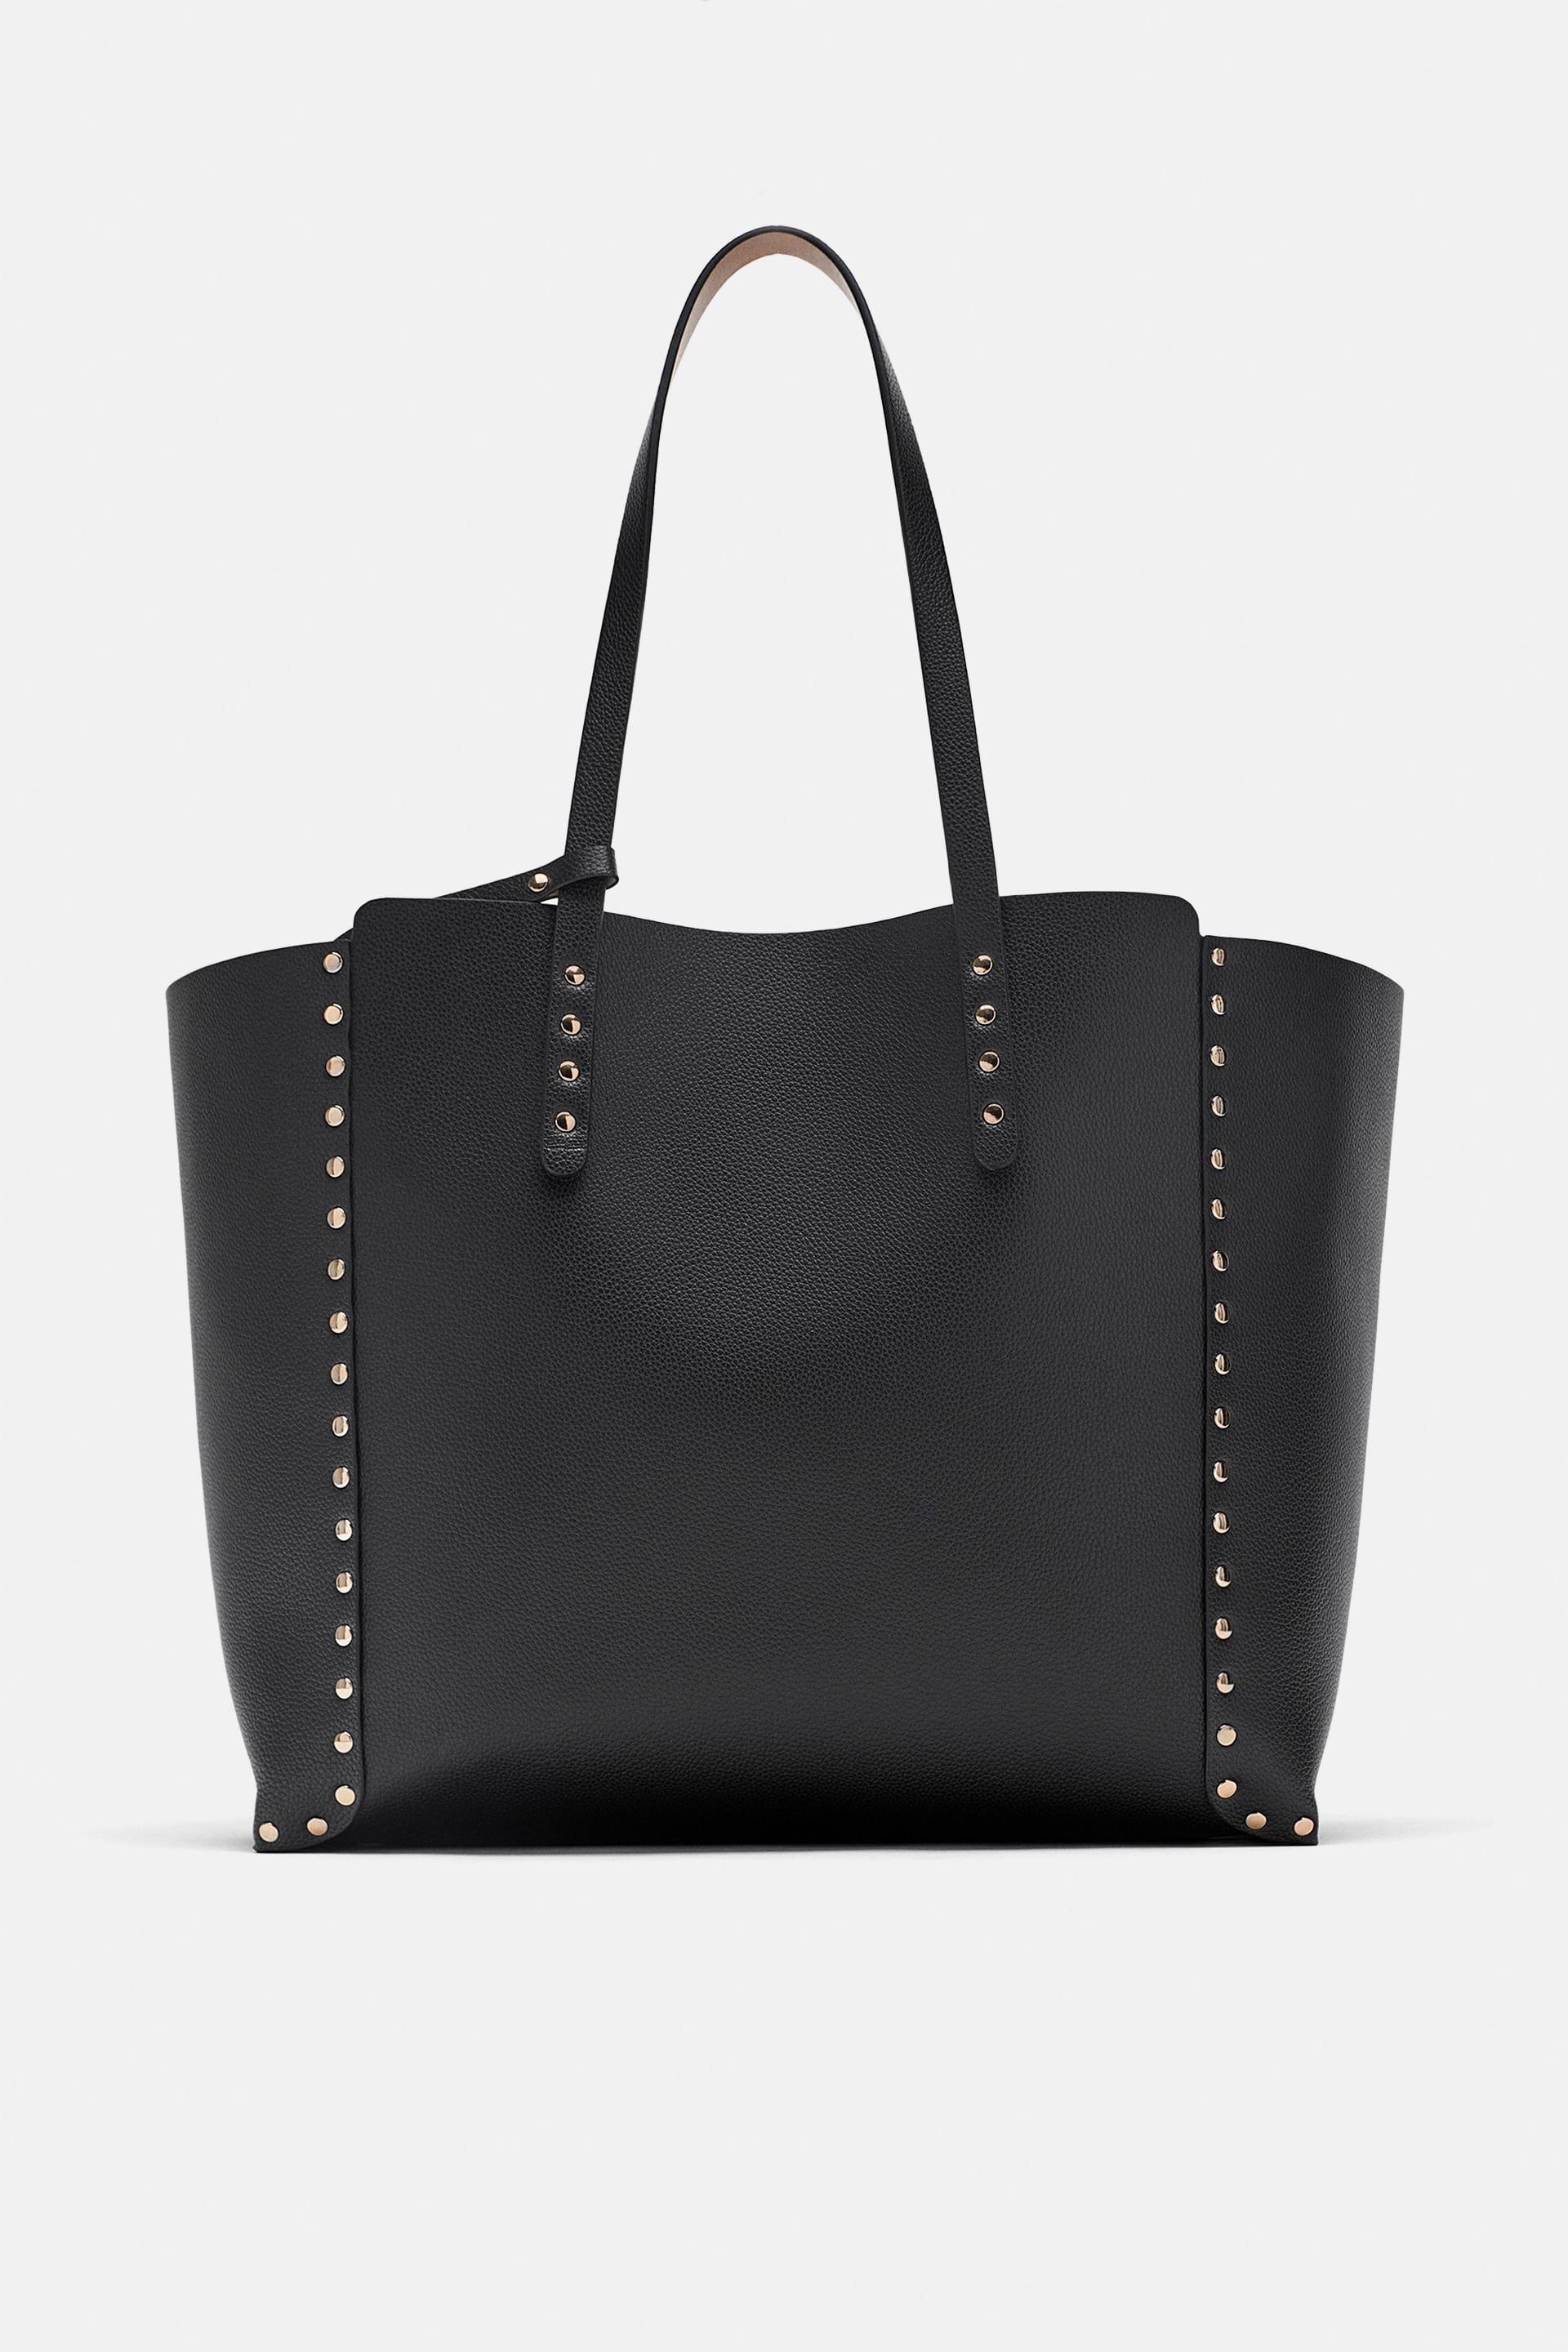 b2ad42c1da9b STUDDED REVERSIBLE SHOPPER BAG - Item available in more colors  Zara ...